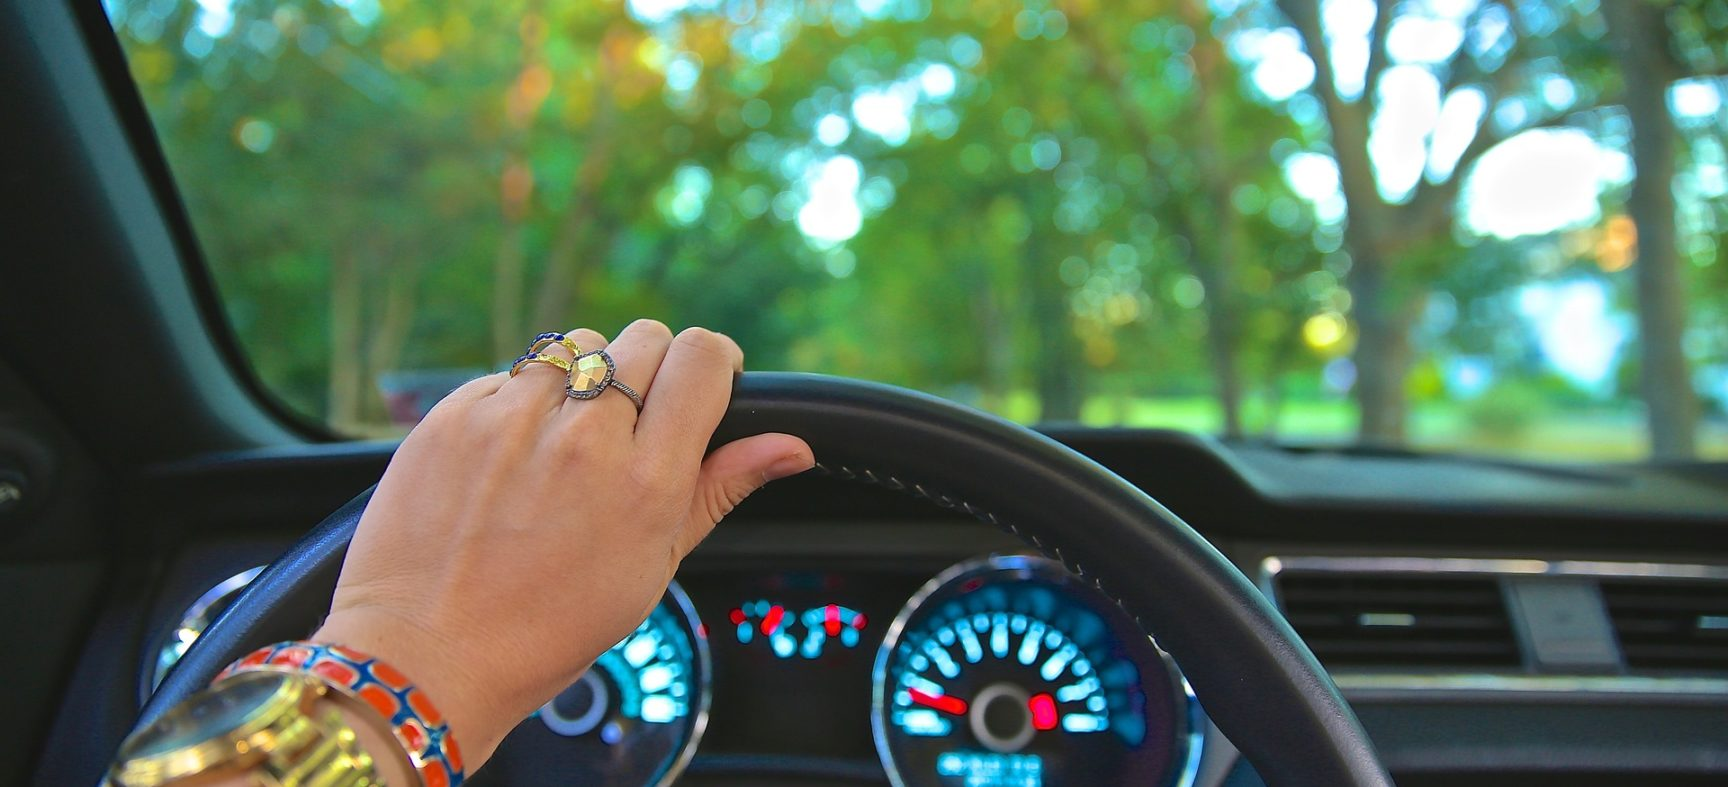 The top 10 safest used cars for teens